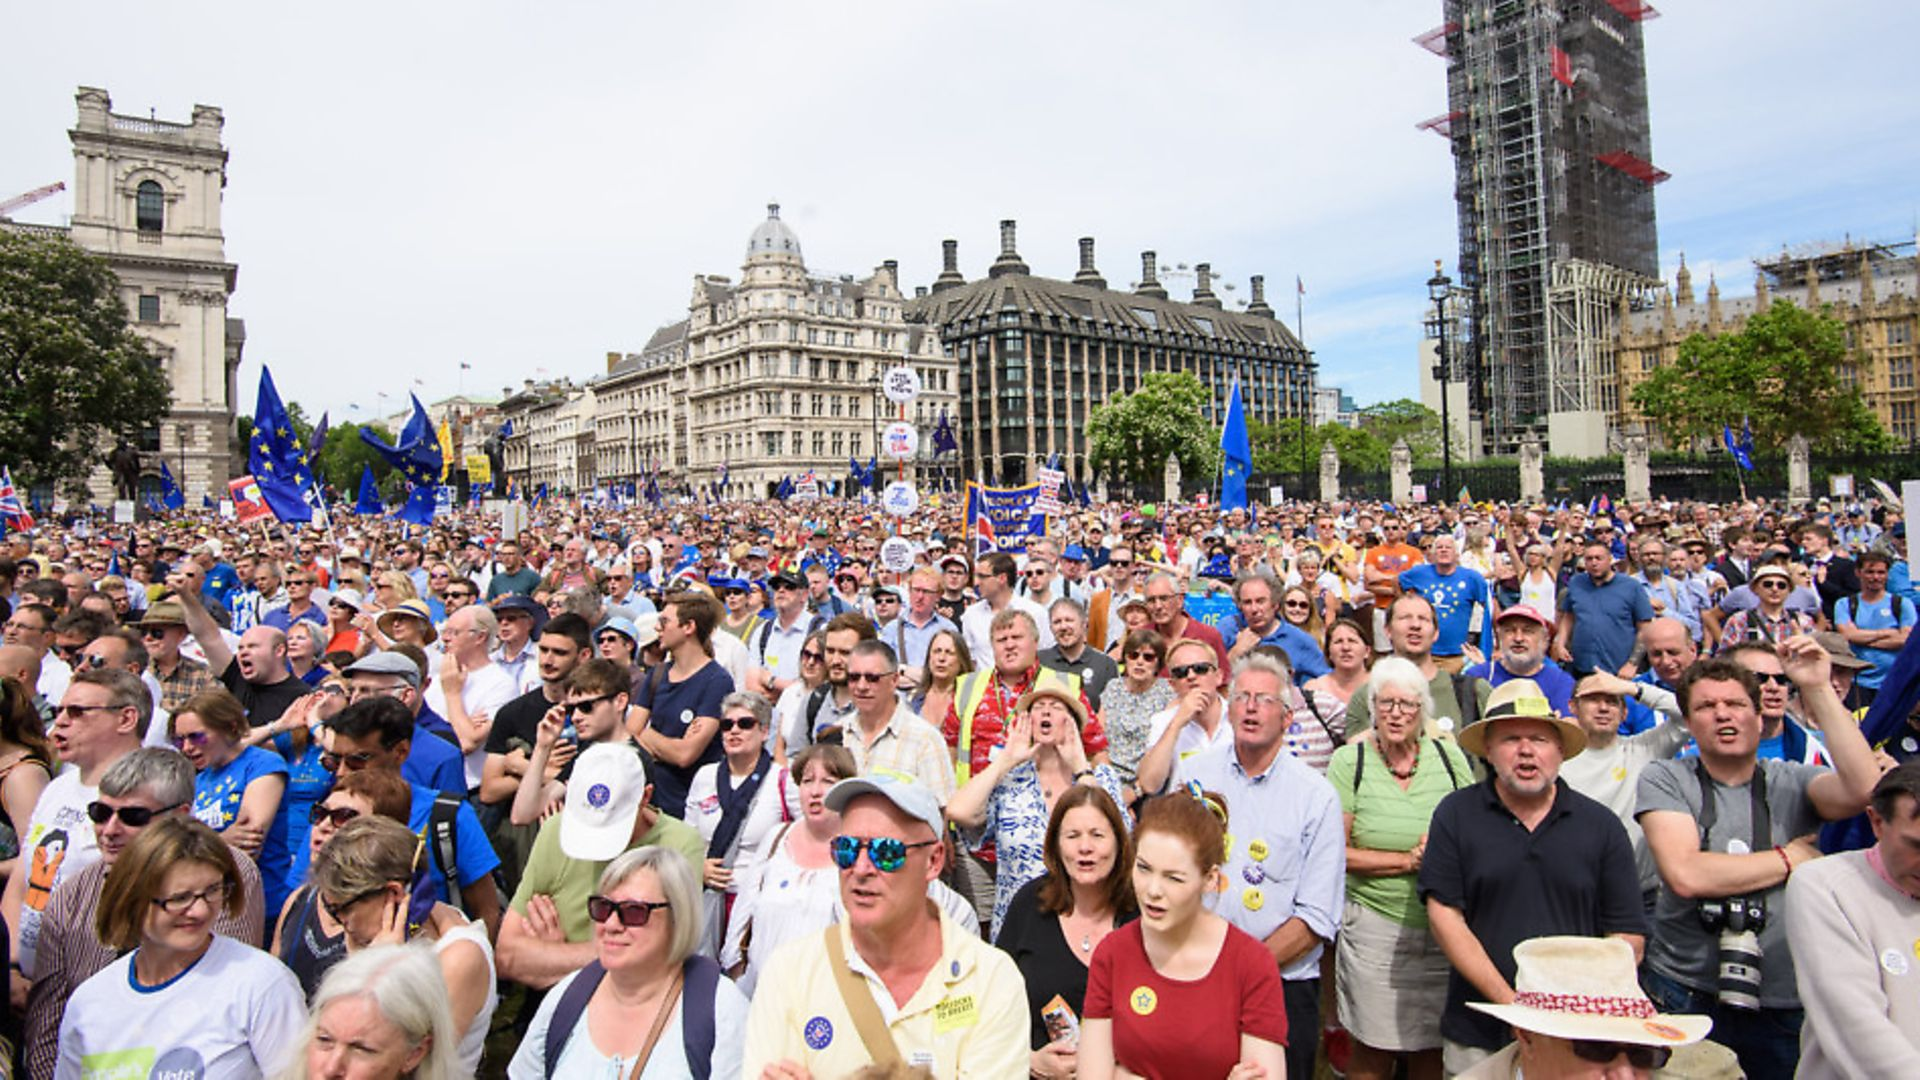 Anti-Brexit demonstrators fill Parliament Square in central London, during the People's Vote march, which called for a vote on the final Brexit deal. Photo: Matt Crossick/EMPICS Entertainment. - Credit: Empics Entertainment